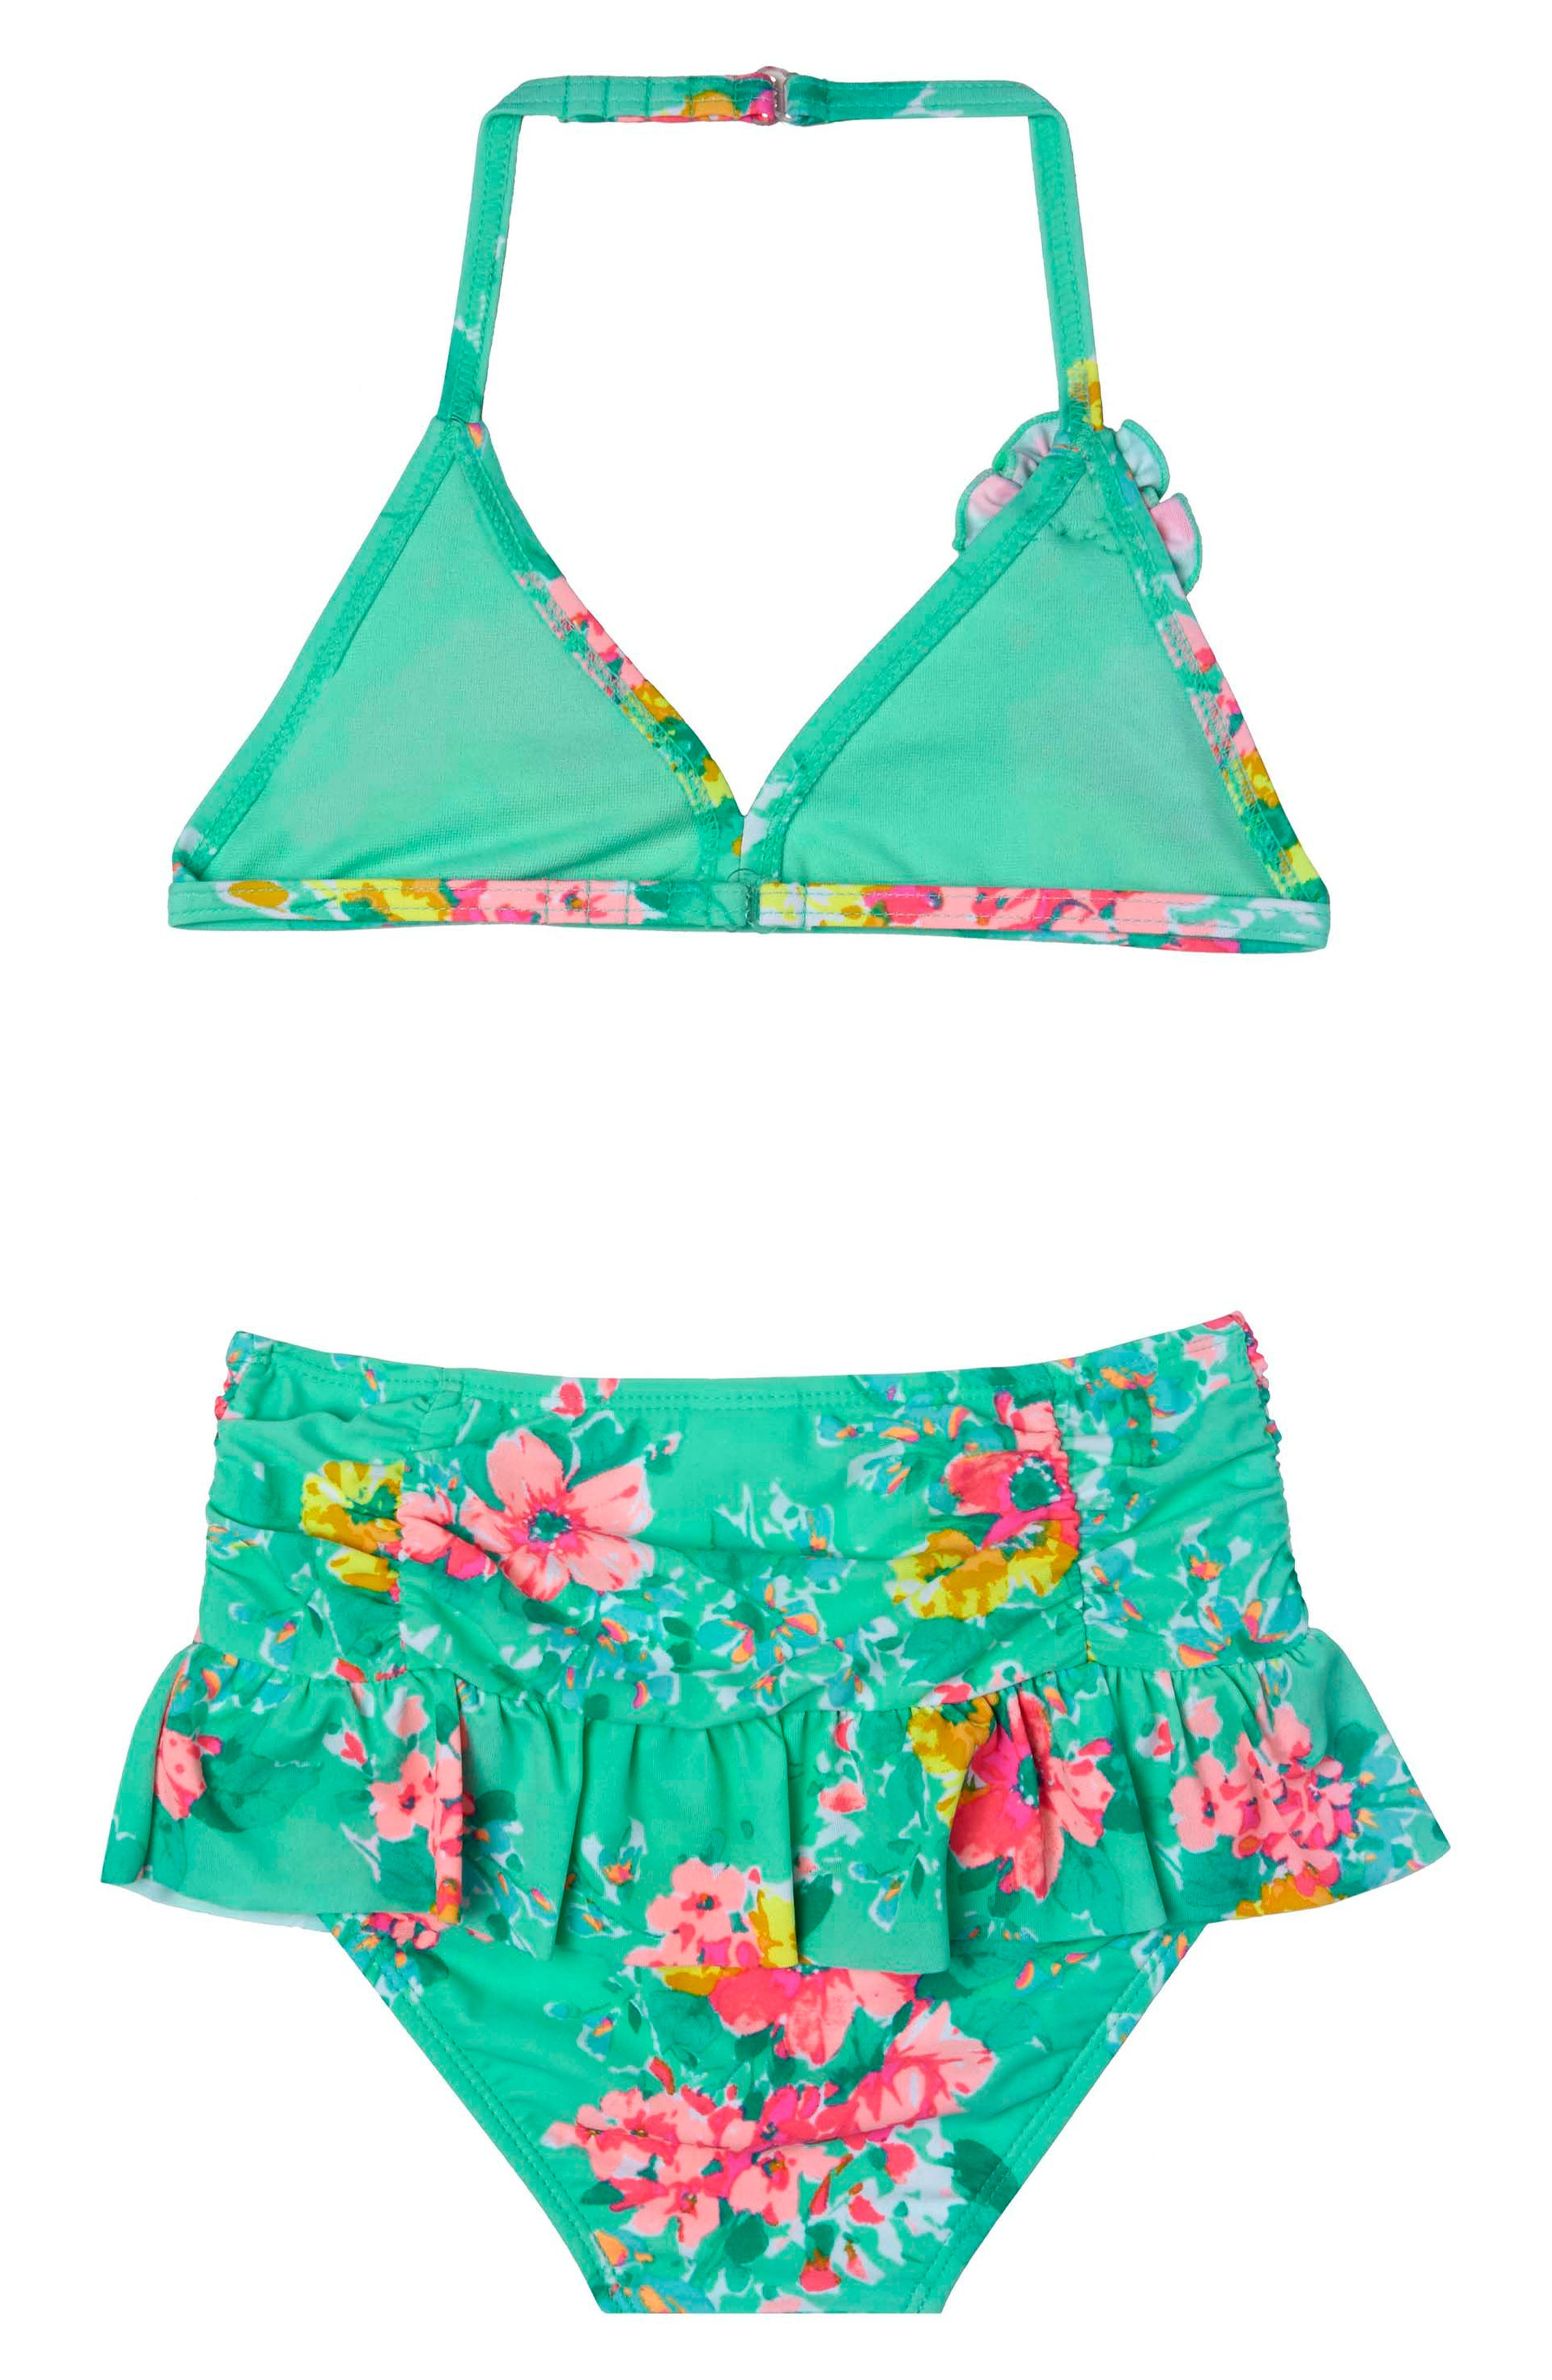 Garden Dream Two-Piece Swimsuit,                             Main thumbnail 1, color,                             308